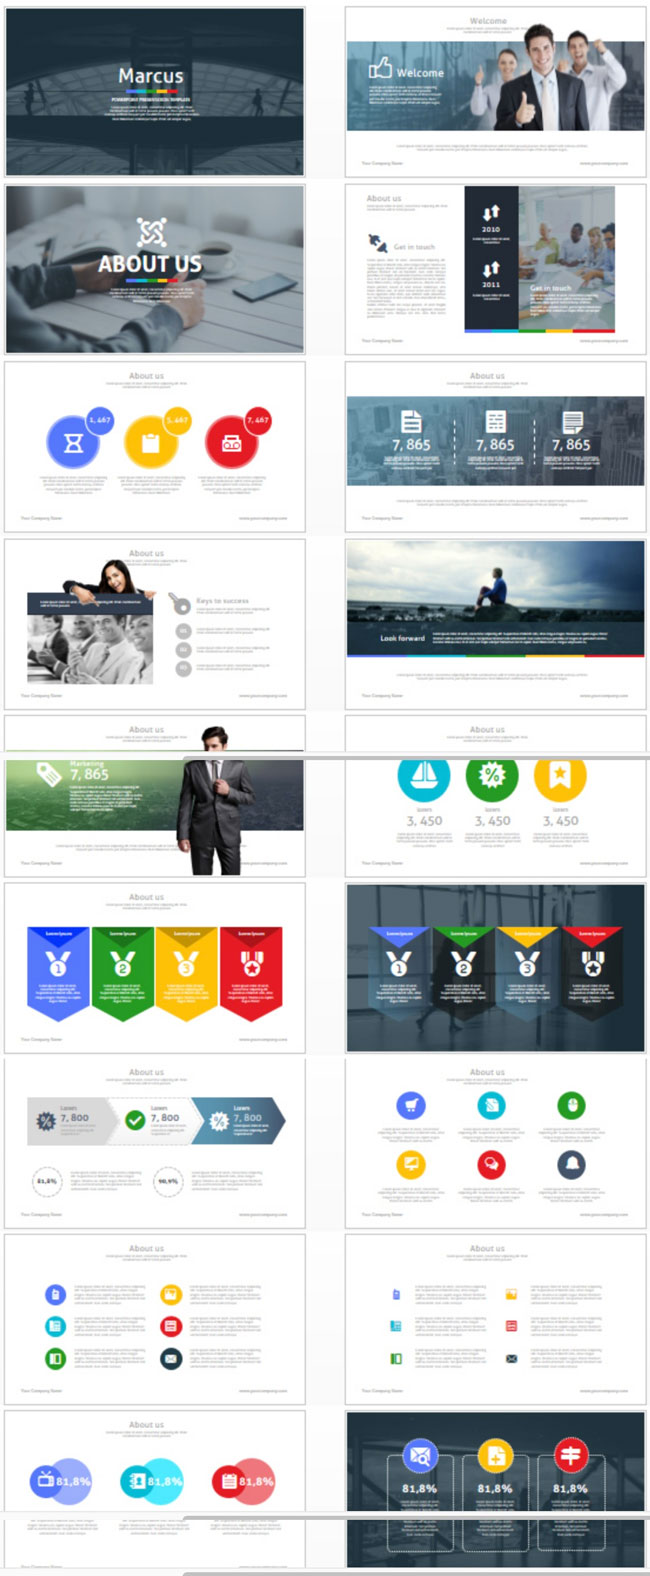 35 amazing powerpoint templates 2017 designmaz marcus is a professional powerpoint presentation template for business marcus comes with 60 amazing color schemes all objects are fully editable alramifo Image collections